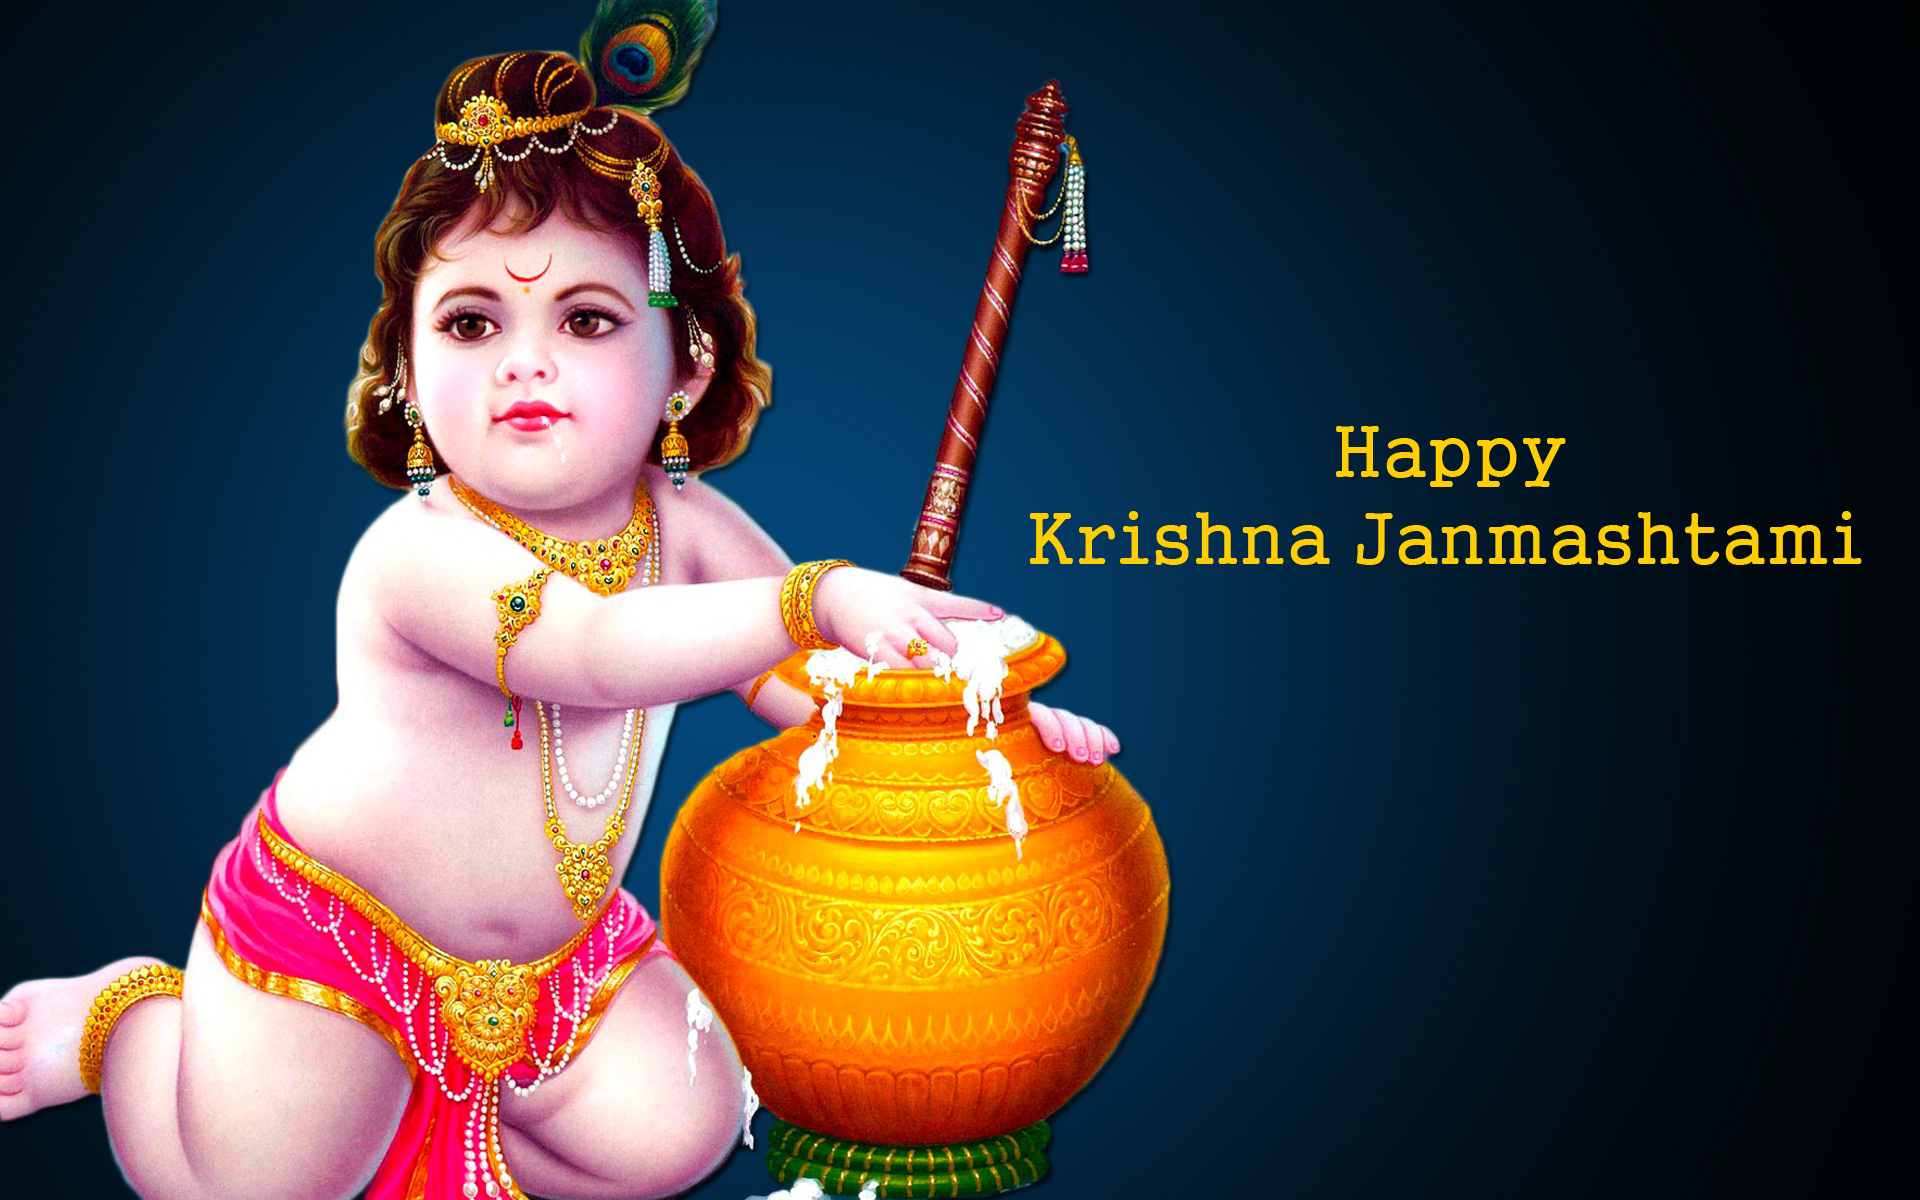 janamashtami images of the lord krishna